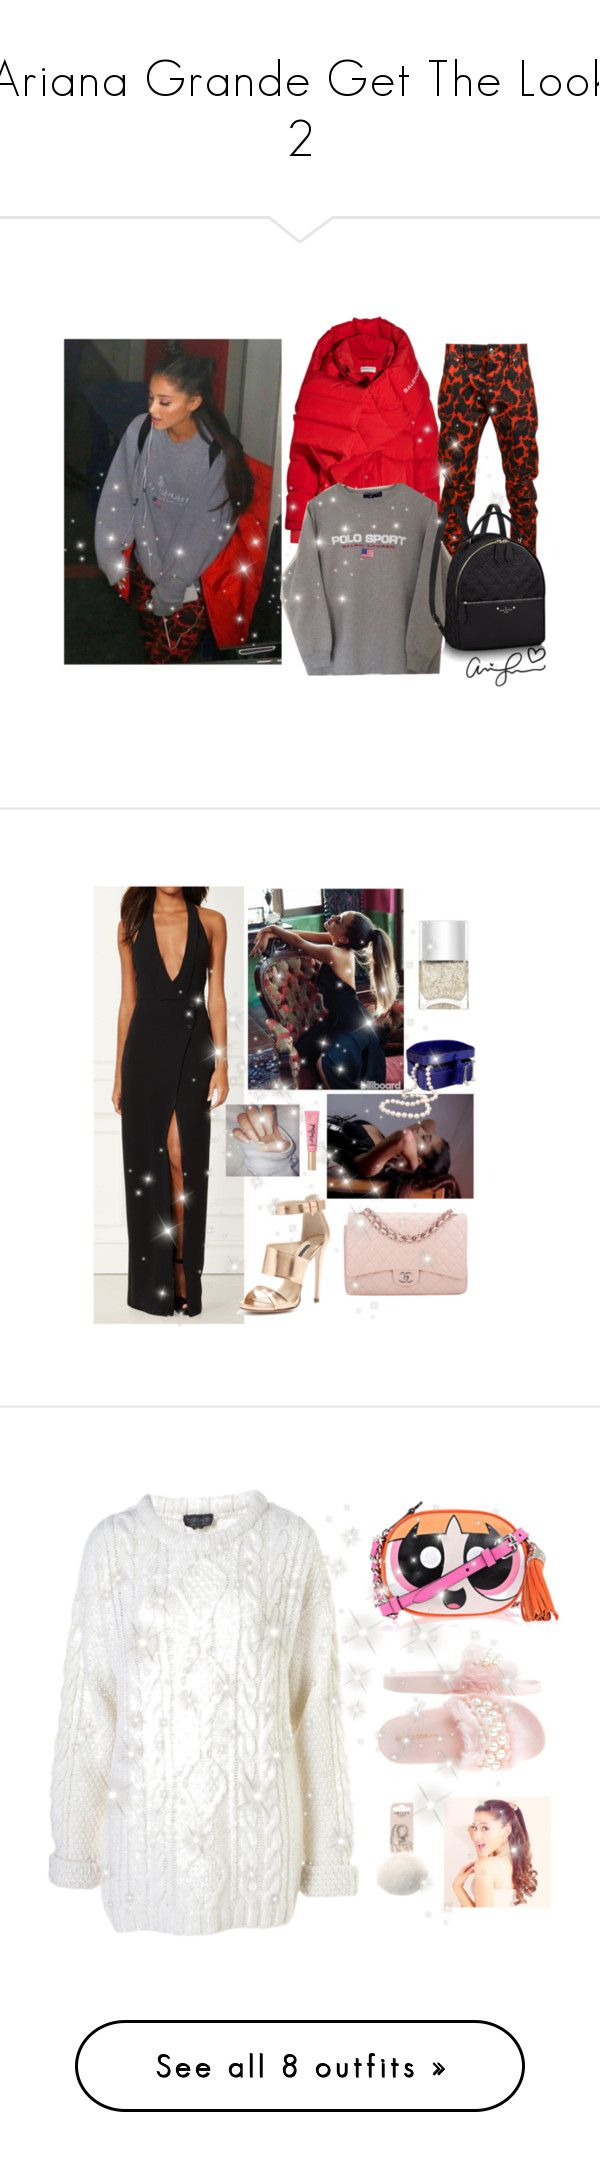 """""""Ariana Grande Get The Look 2"""" by faanciella on Polyvore featuring mode, Balenciaga, Elwood, ArianaGrande, Ruthie Davis, Chanel, Nails Inc., Too Faced Cosmetics, Wild Diva et Moschino"""